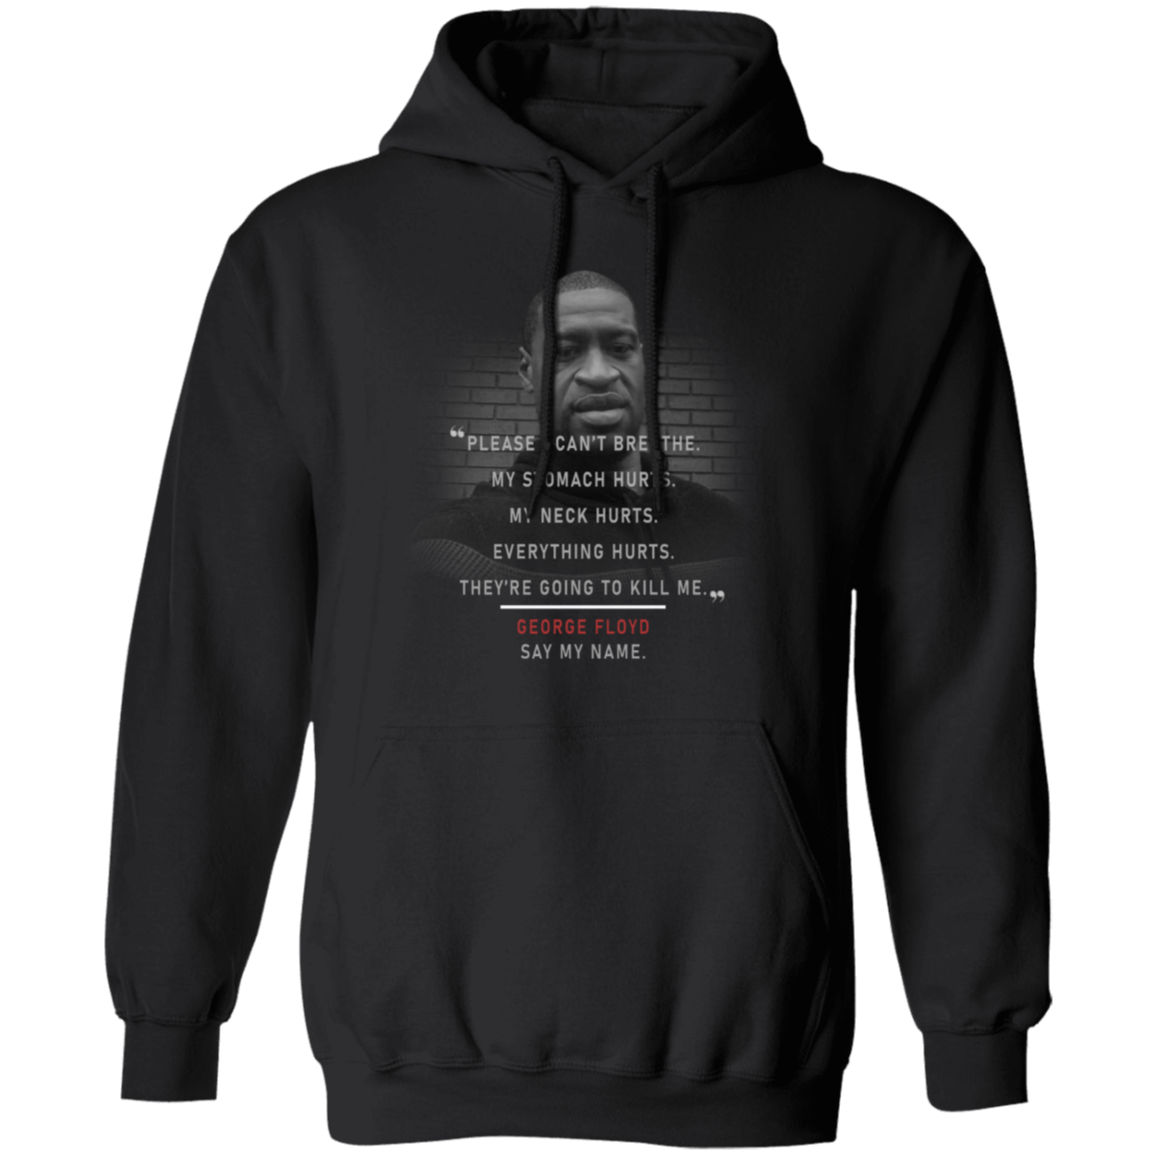 George Floyd Please I Can't Breathe Hoodie Black Lives Matter Hoodie Protest